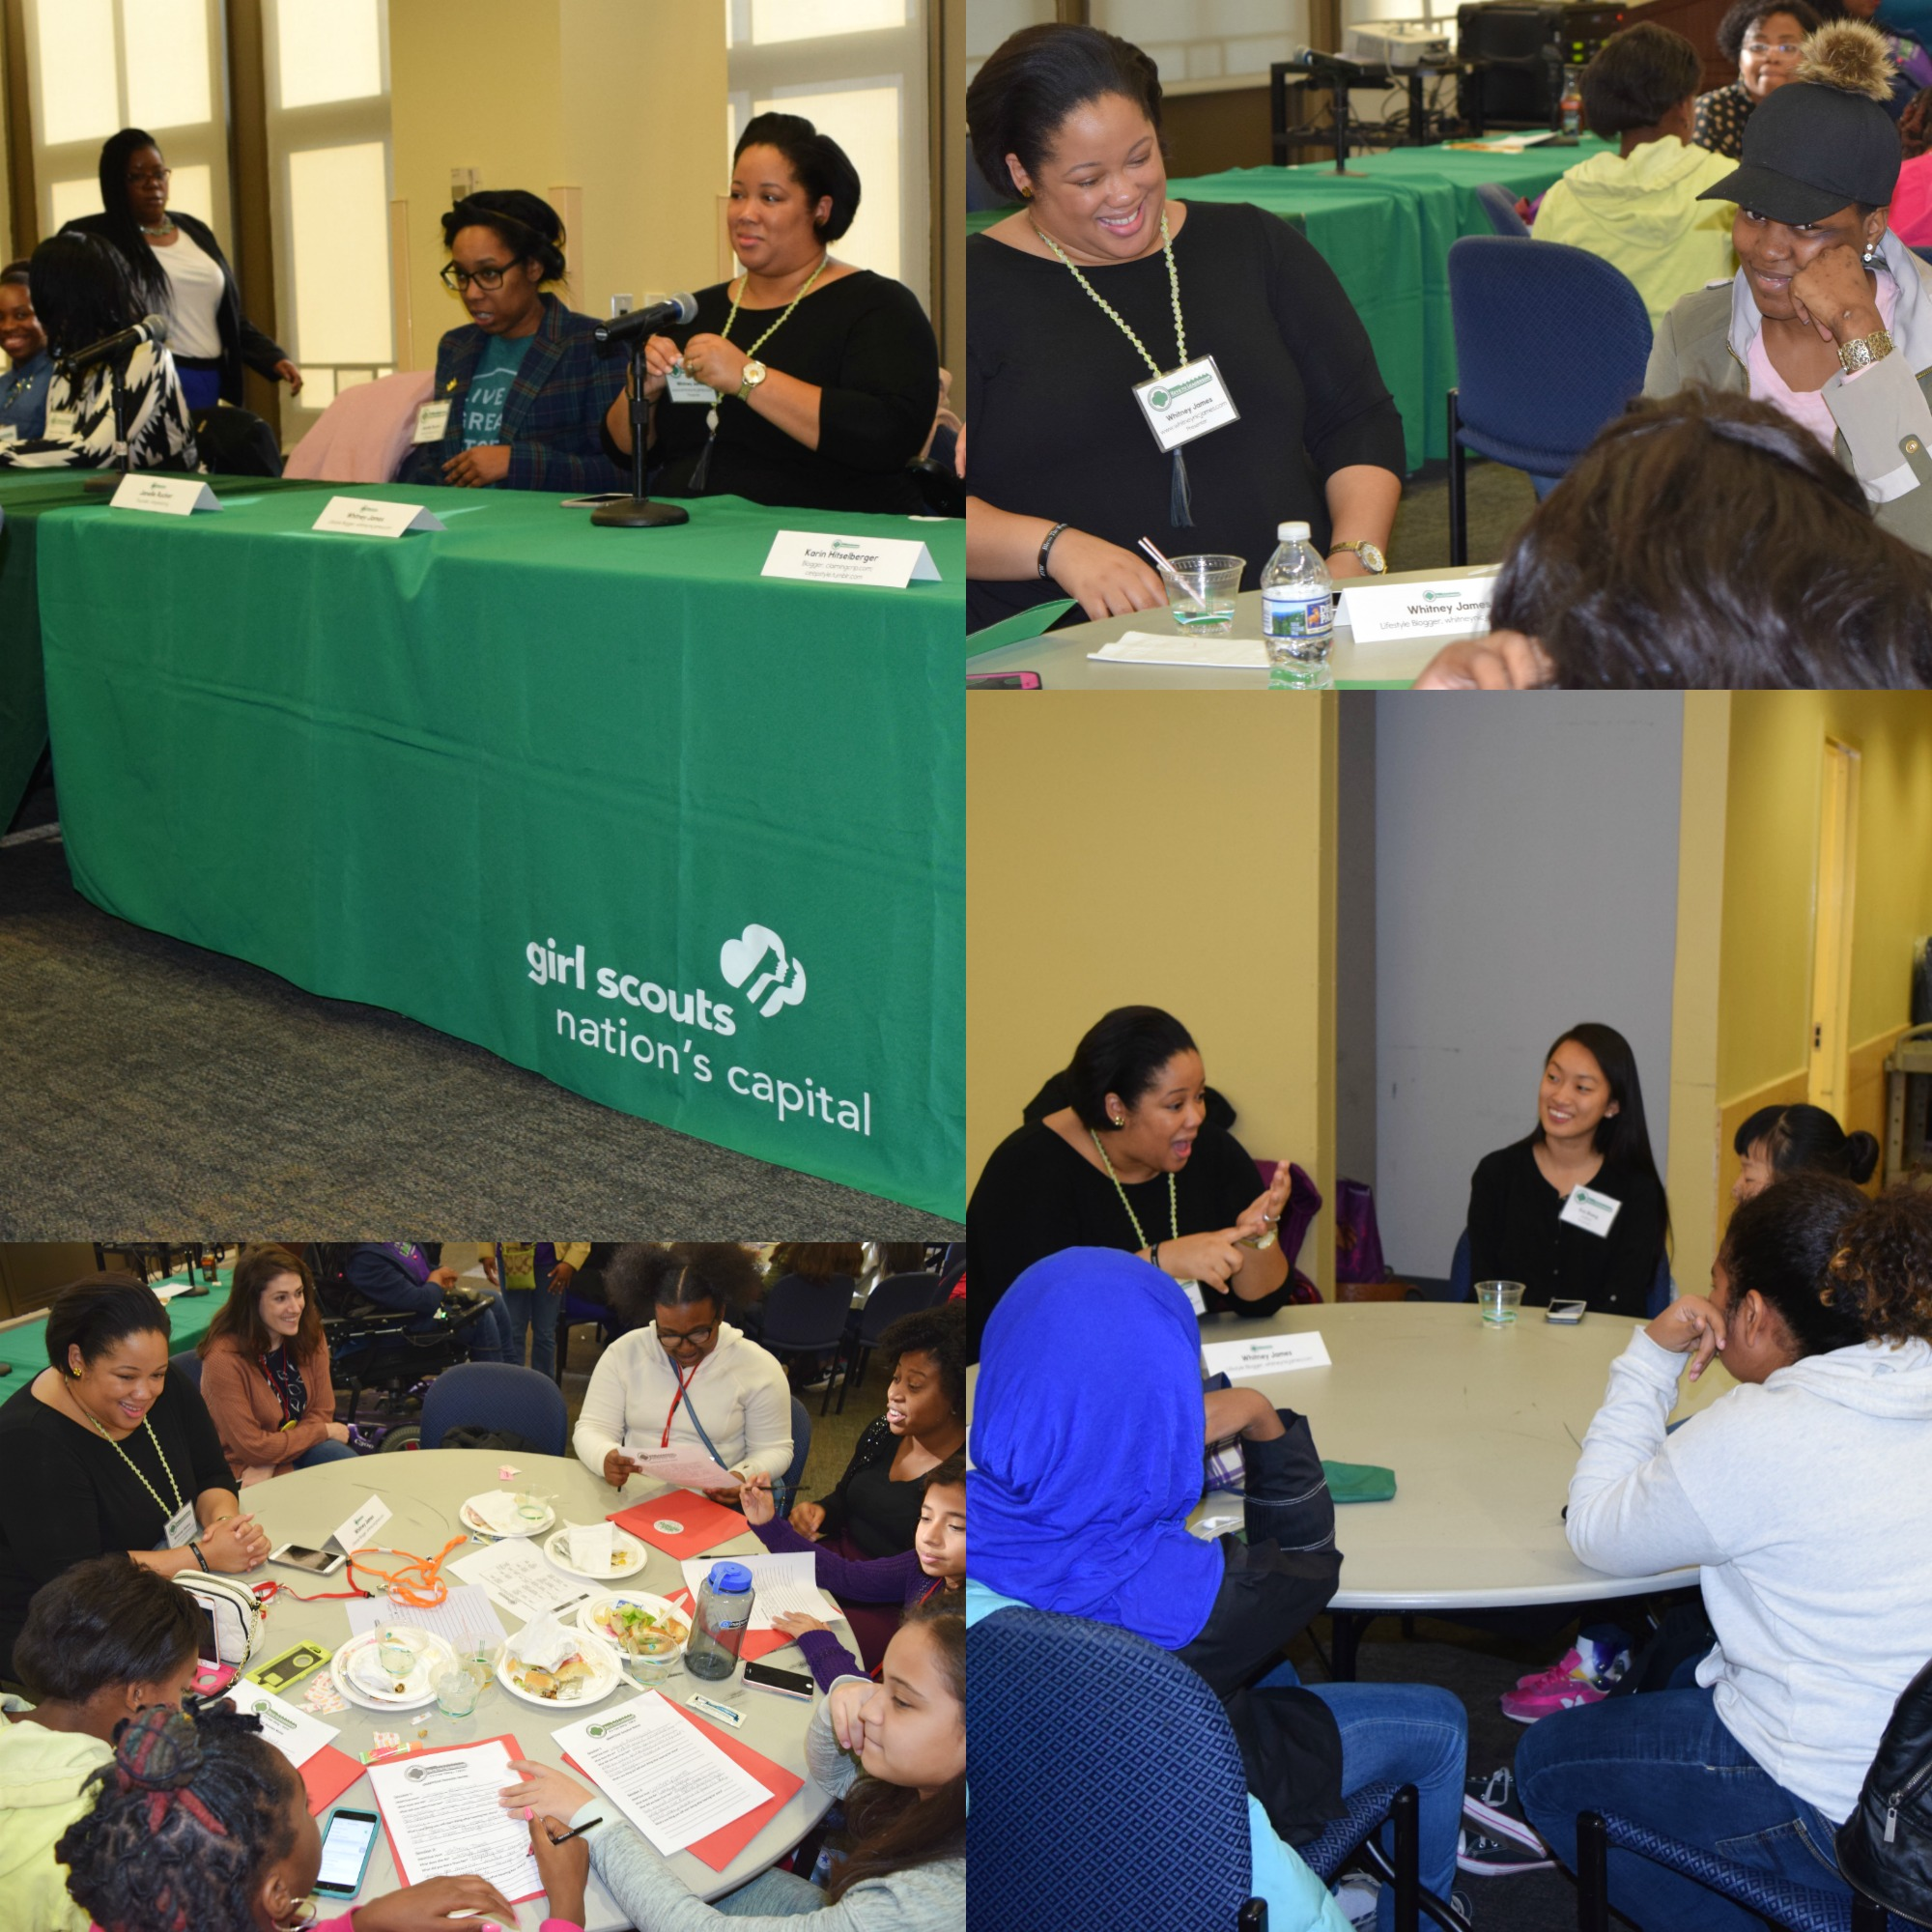 Girl Scouts Nation's Capital Keys to Leadership Conference